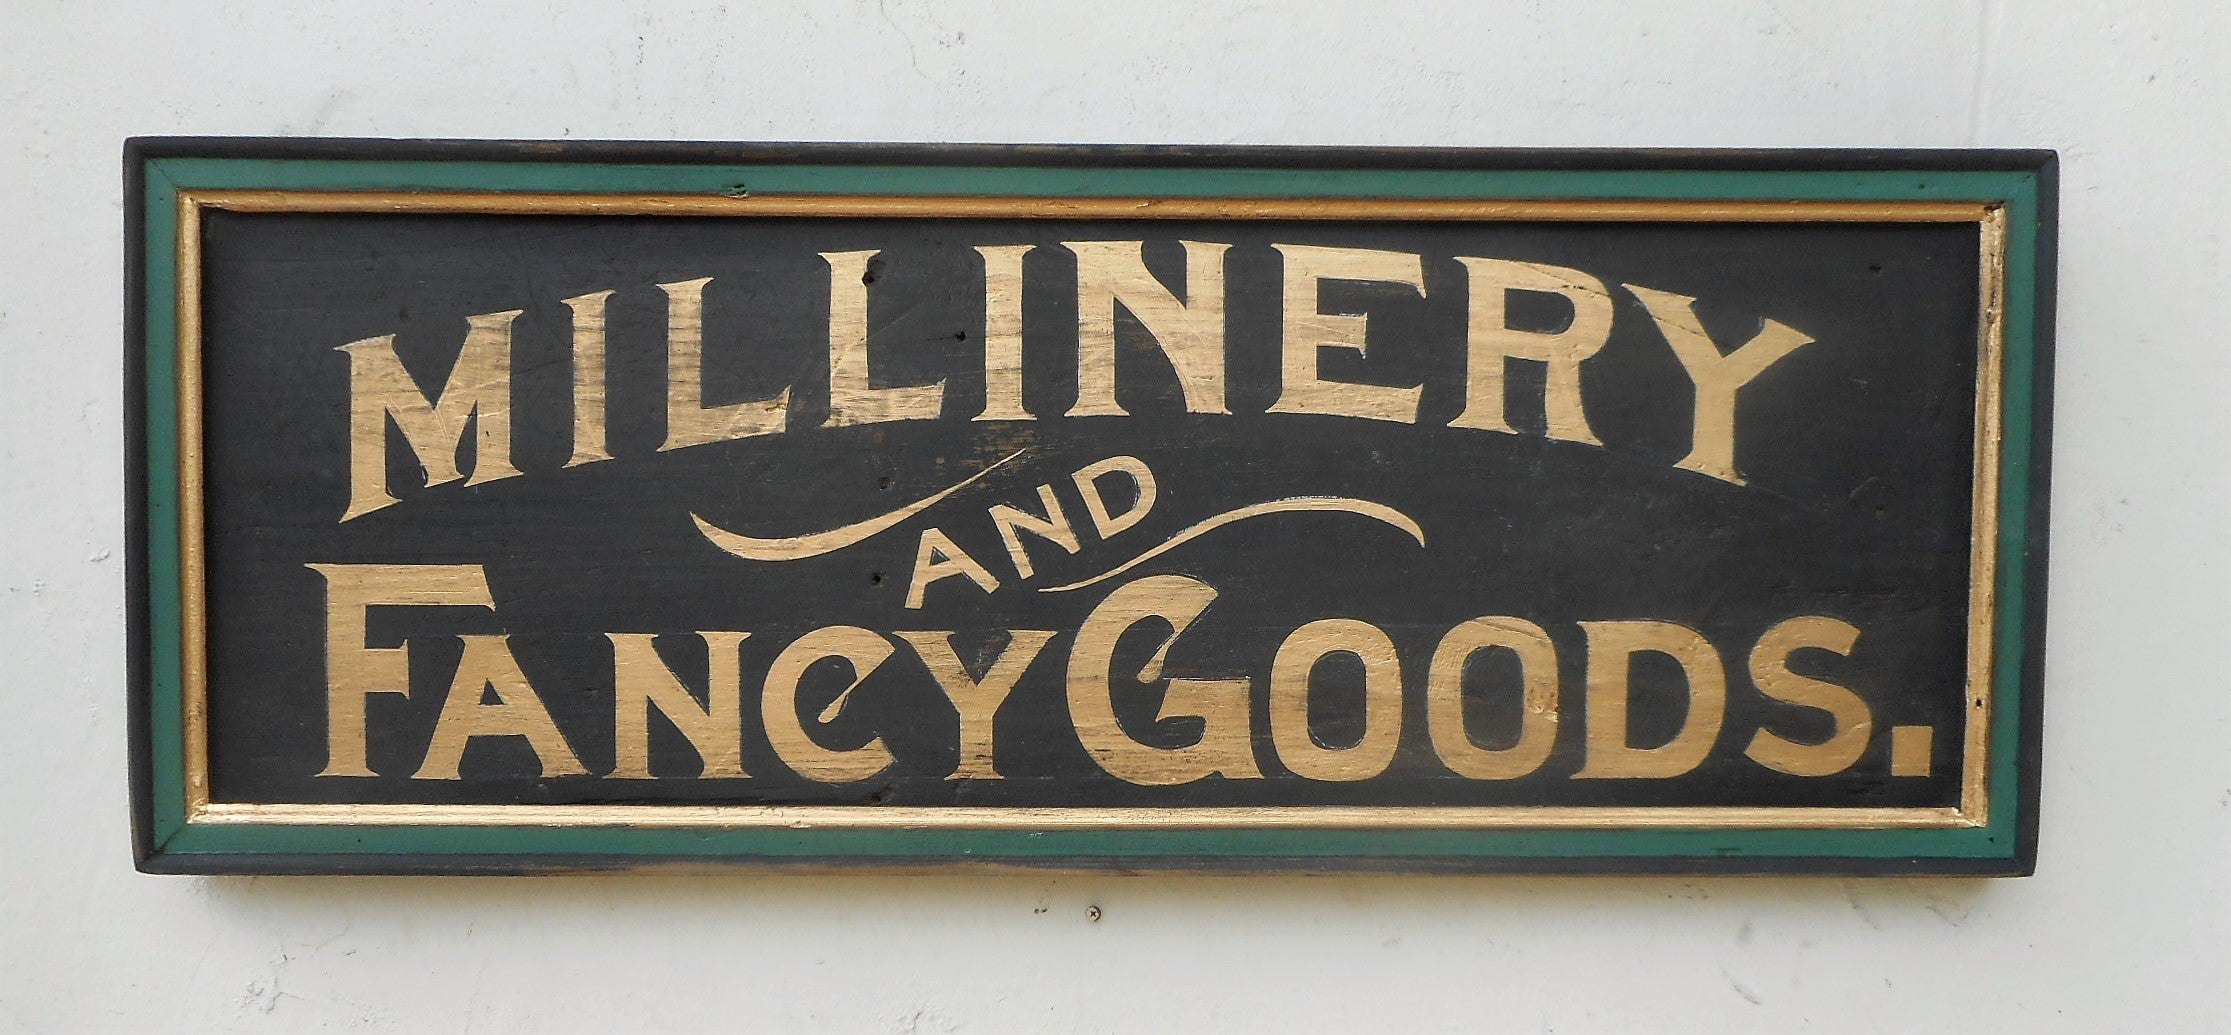 Millinery and Fancy Goods